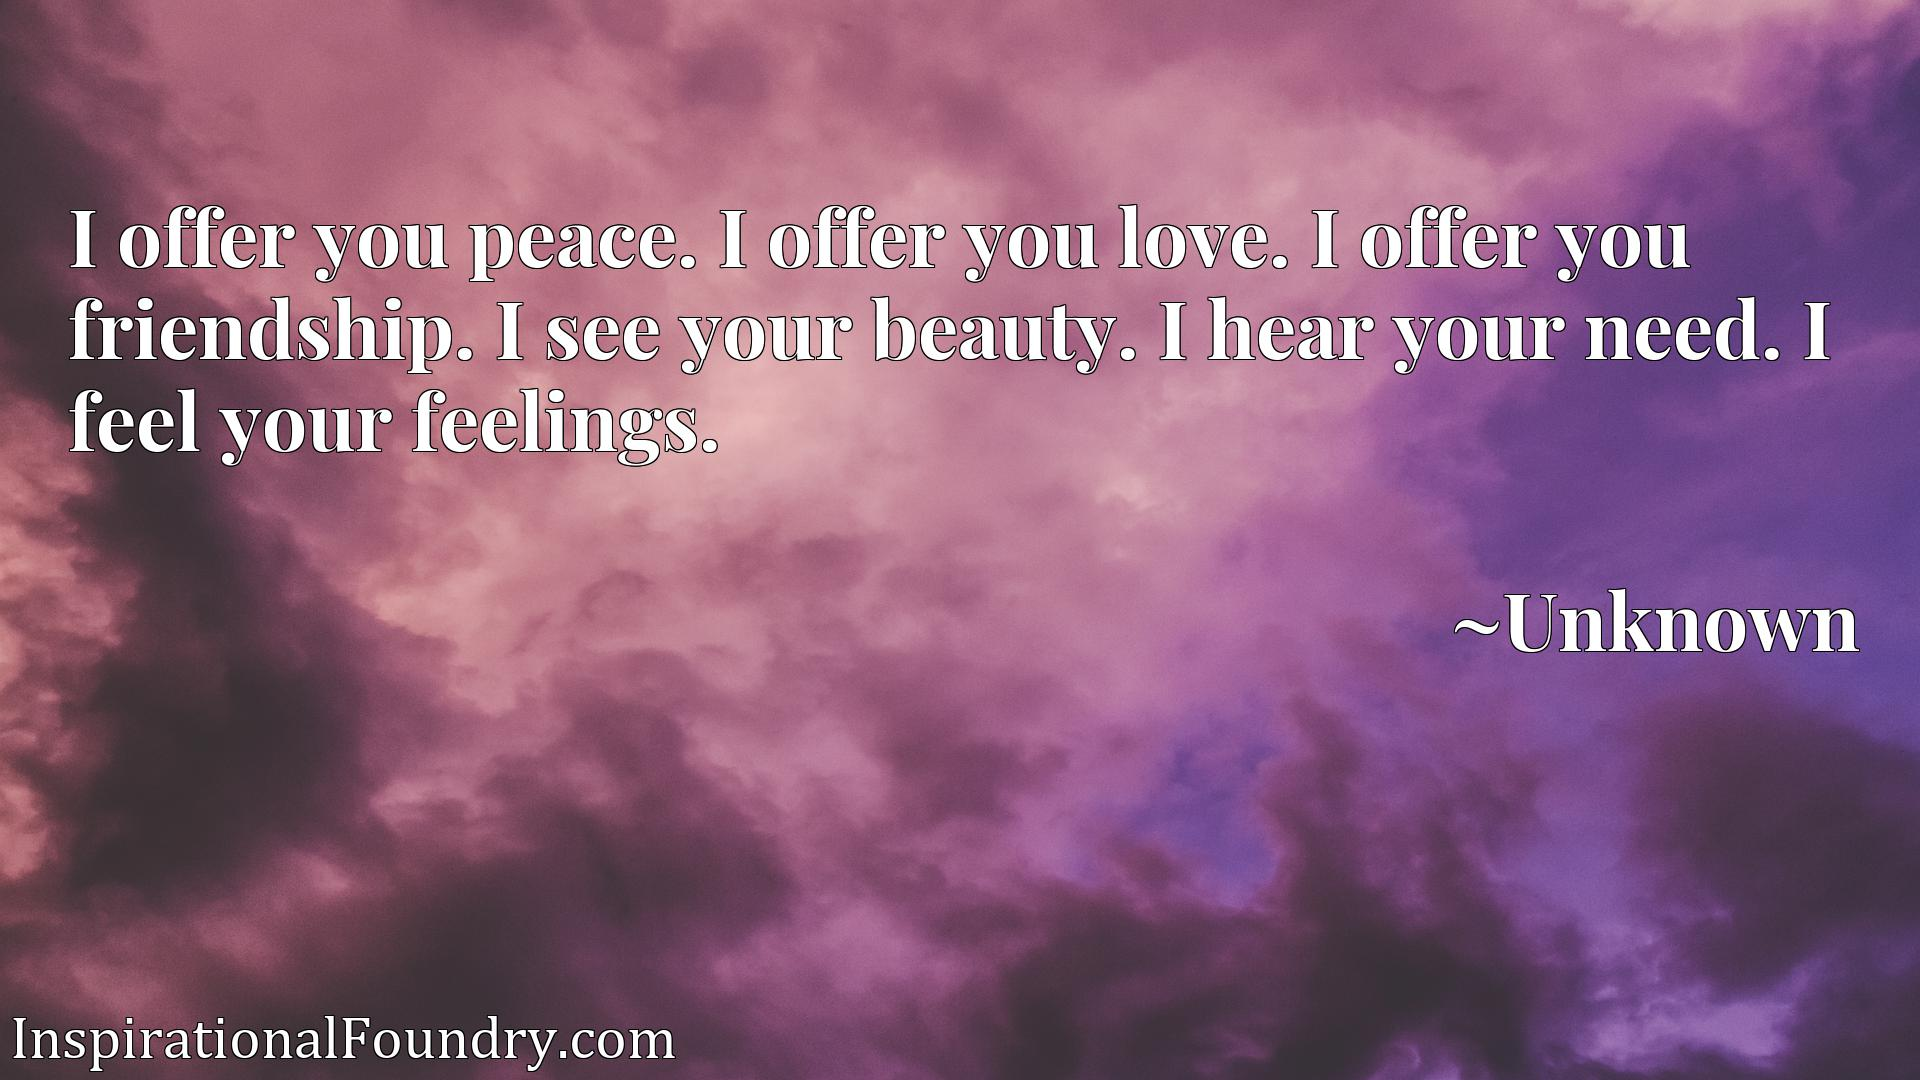 I offer you peace. I offer you love. I offer you friendship. I see your beauty. I hear your need. I feel your feelings.